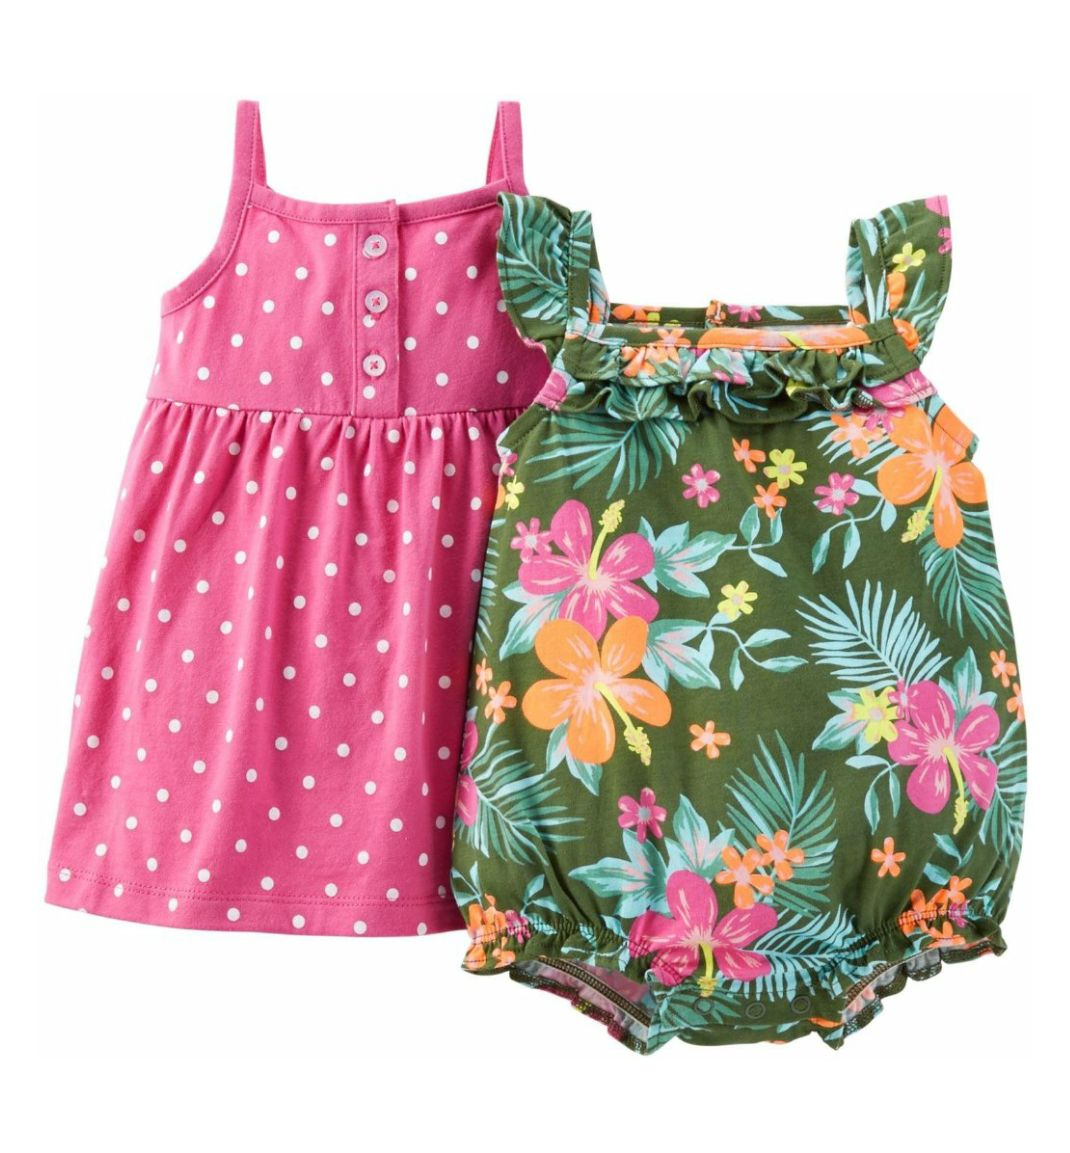 f8be597ea70e Carter s Baby Girls Polka Dot Dress   Tropical Romper Set with ...